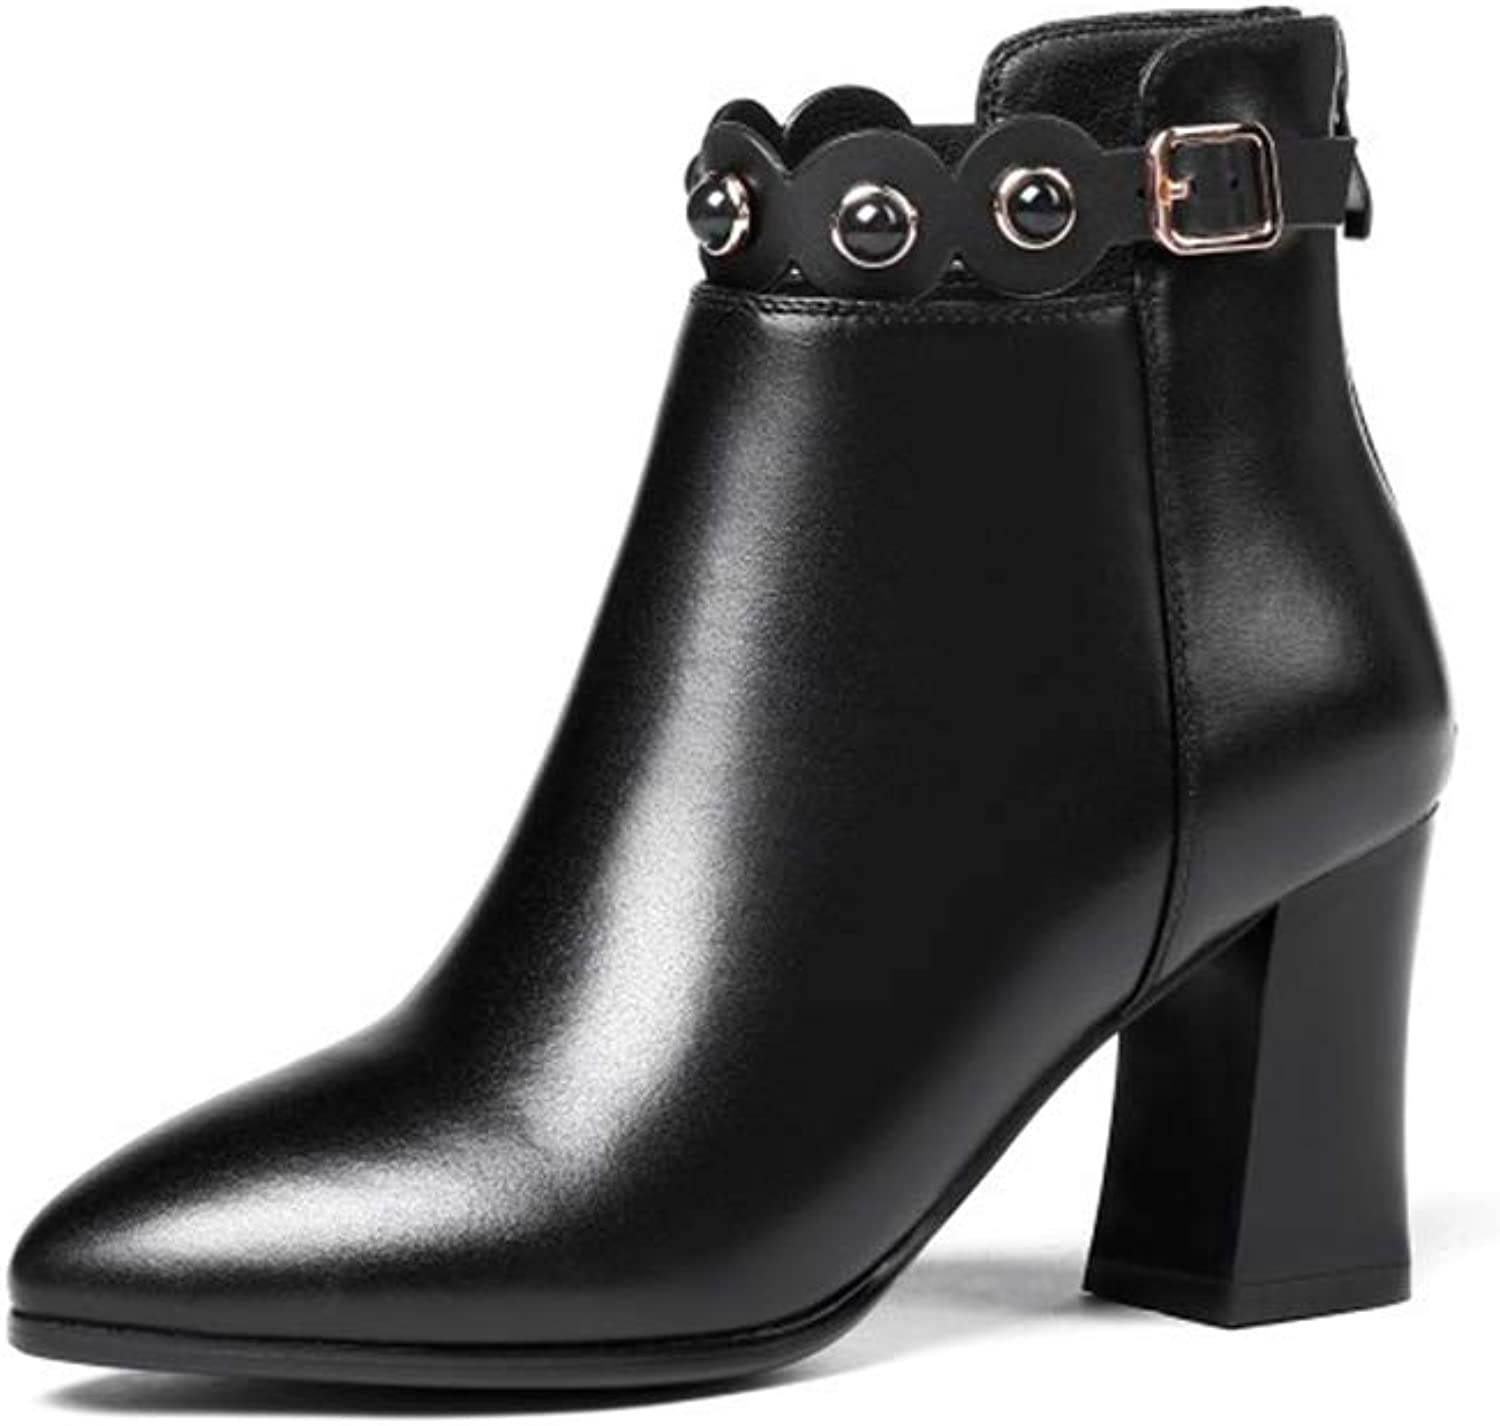 Women's High-Heel Boots Leather Fall & Winter Booties Lace Up Ankle High Boots Martin Boots Ankle Boots Wedding Party & Evening (color   Black, Size   37)